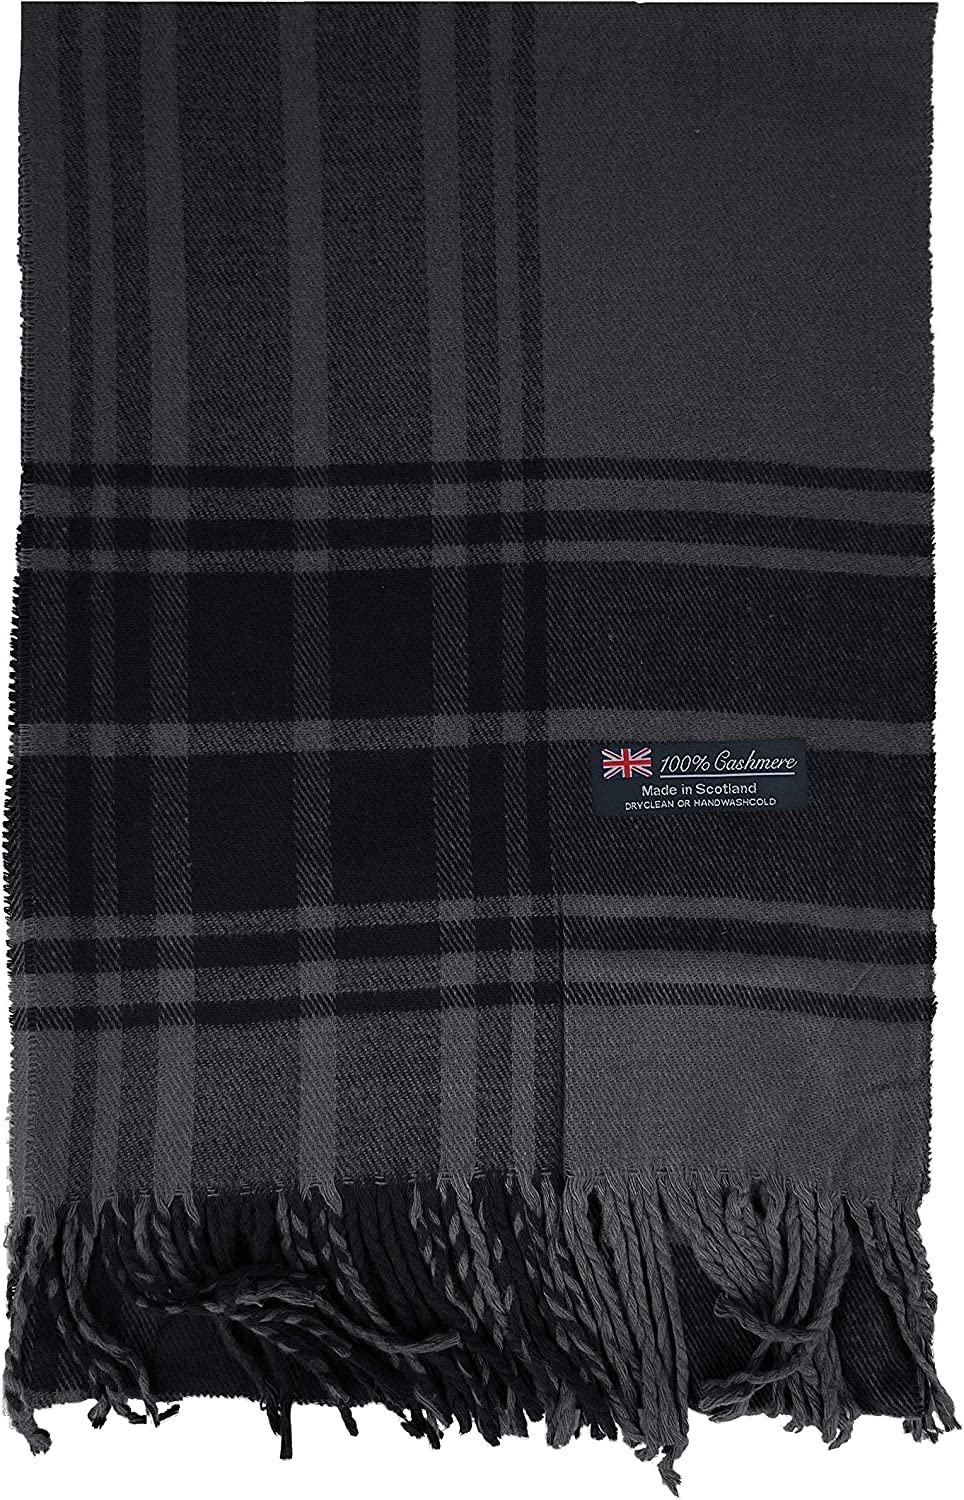 2 PLY Very popular 100% Cashmere Scarf Elegant Made Wo Ranking TOP19 Scotland Collection in